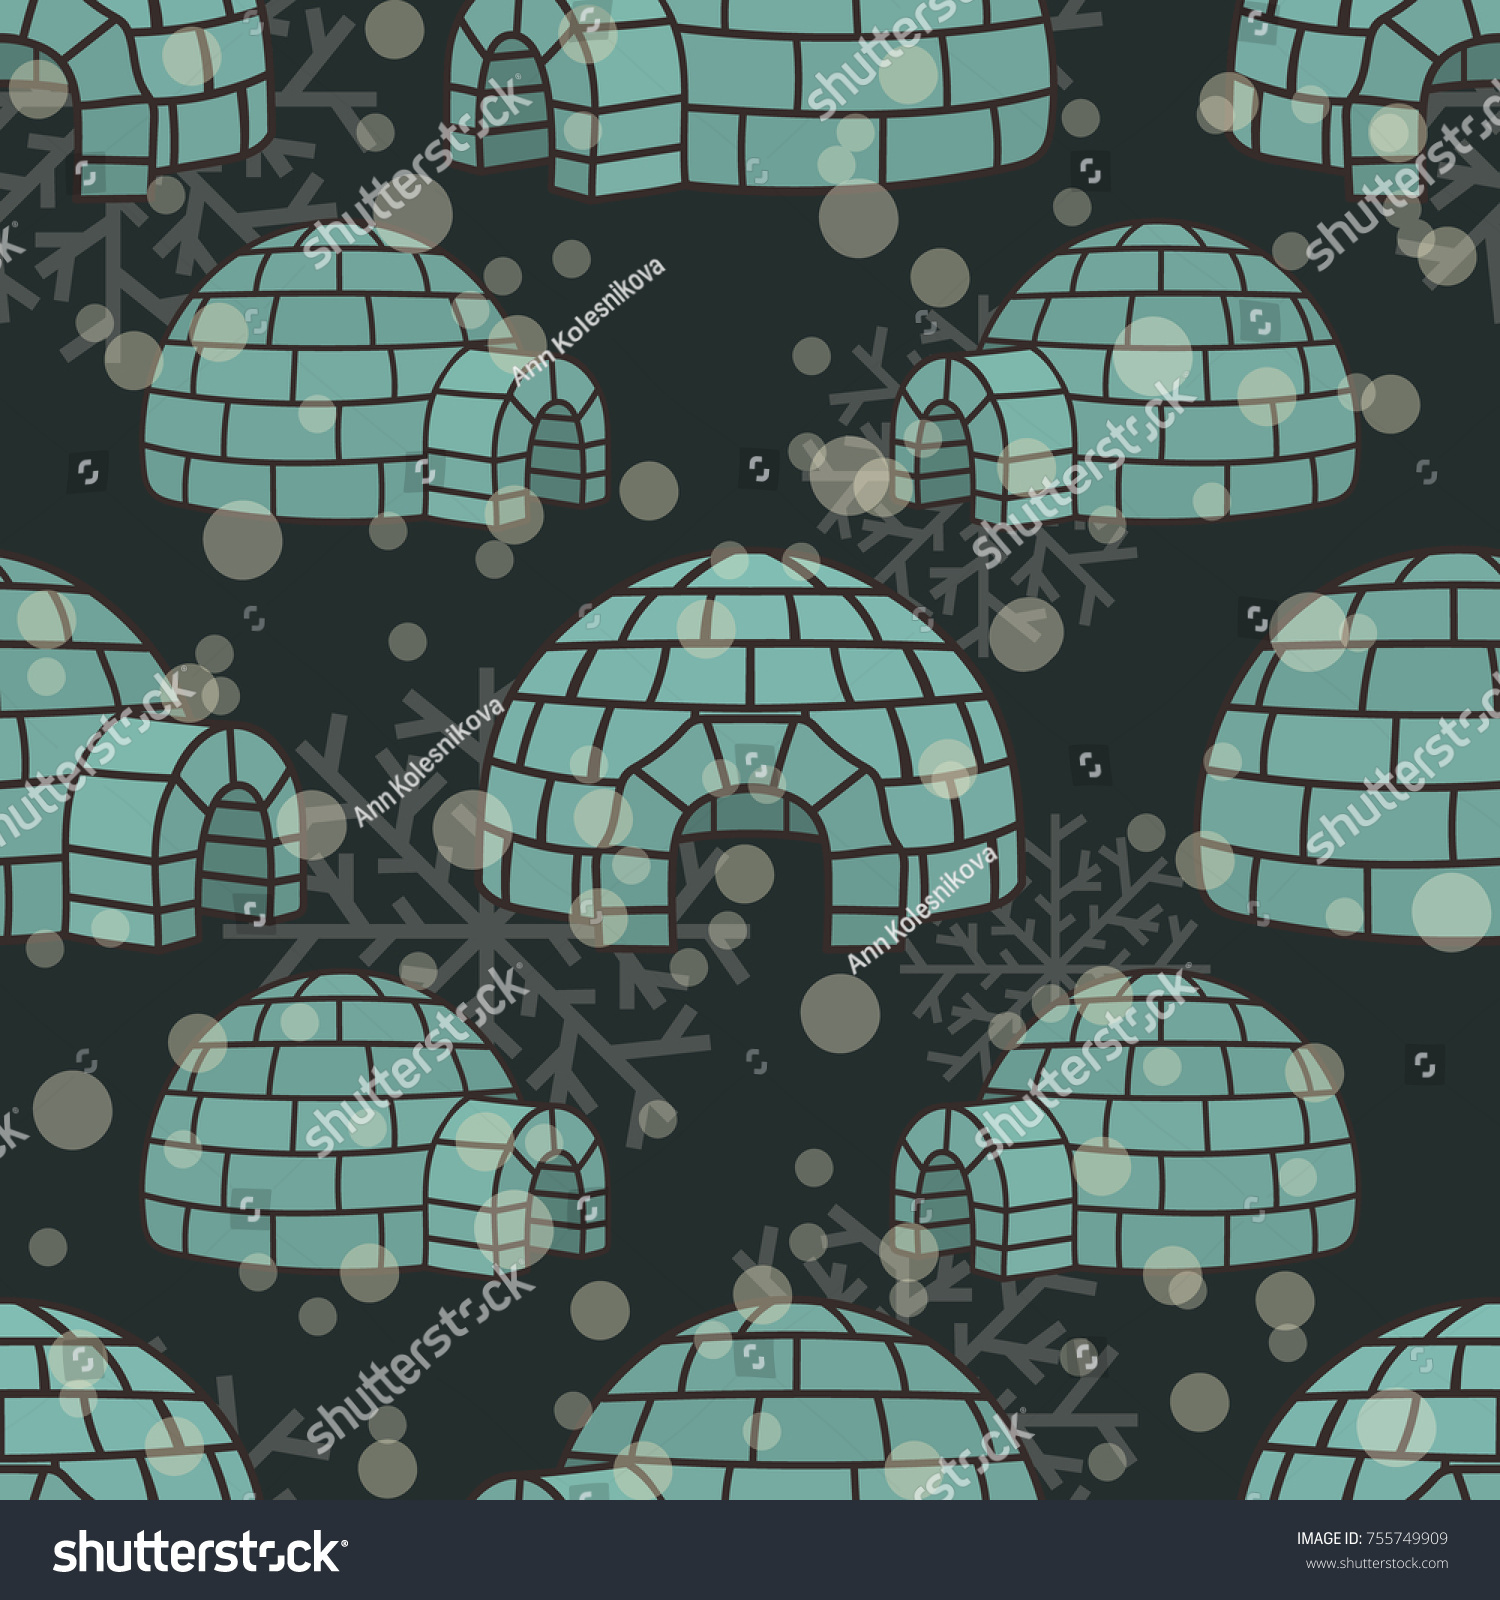 Ice house igloo vector color seamless pattern  House from ice blocks design  for print. Ice House Igloo Vector Color Seamless Stock Vector 755749909